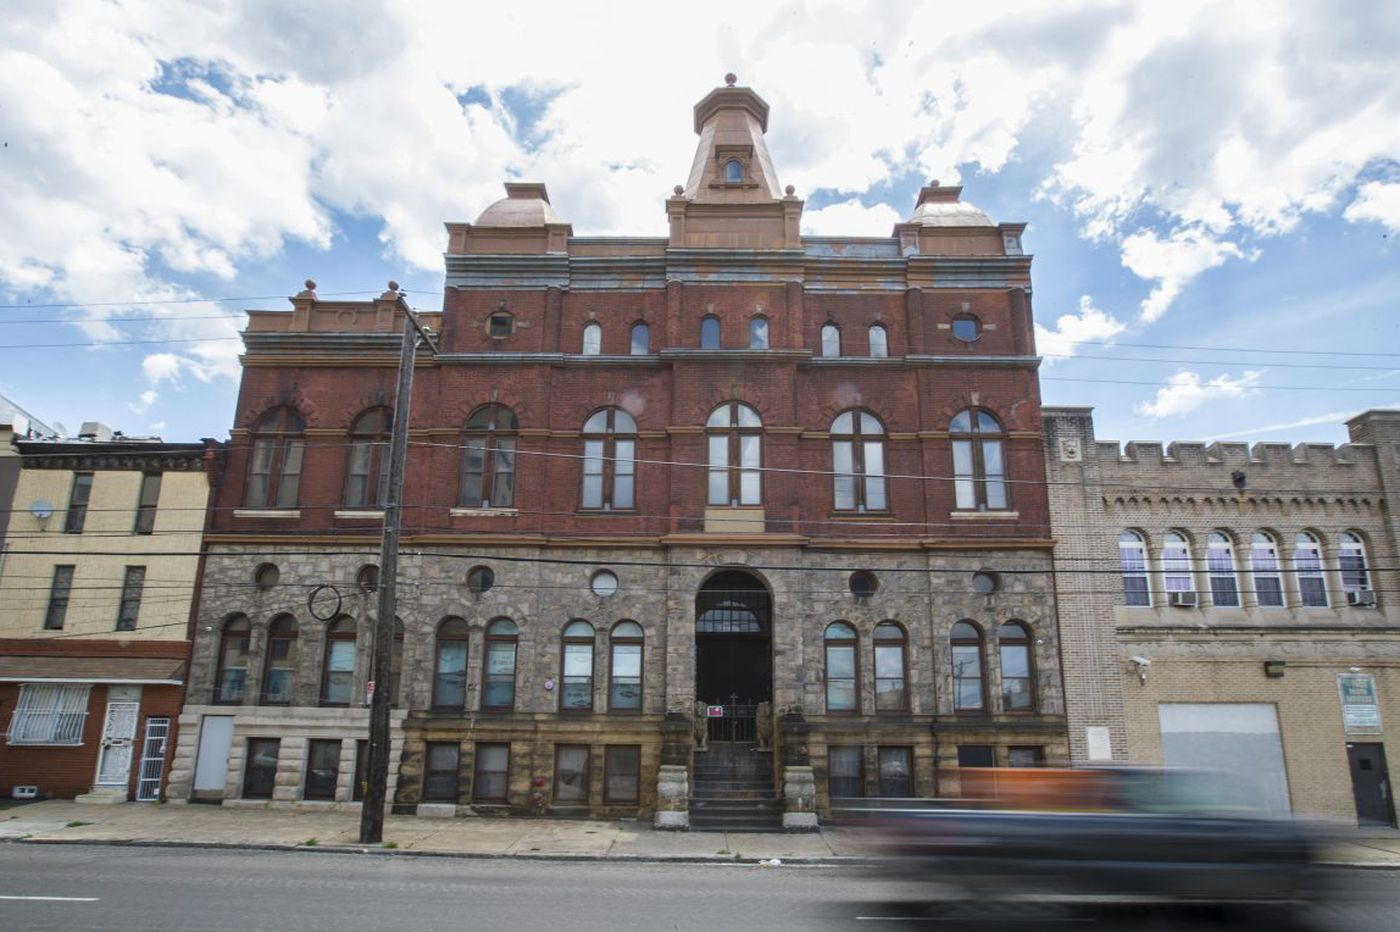 German passion for music survives in rich architecture of Kensington concert hall